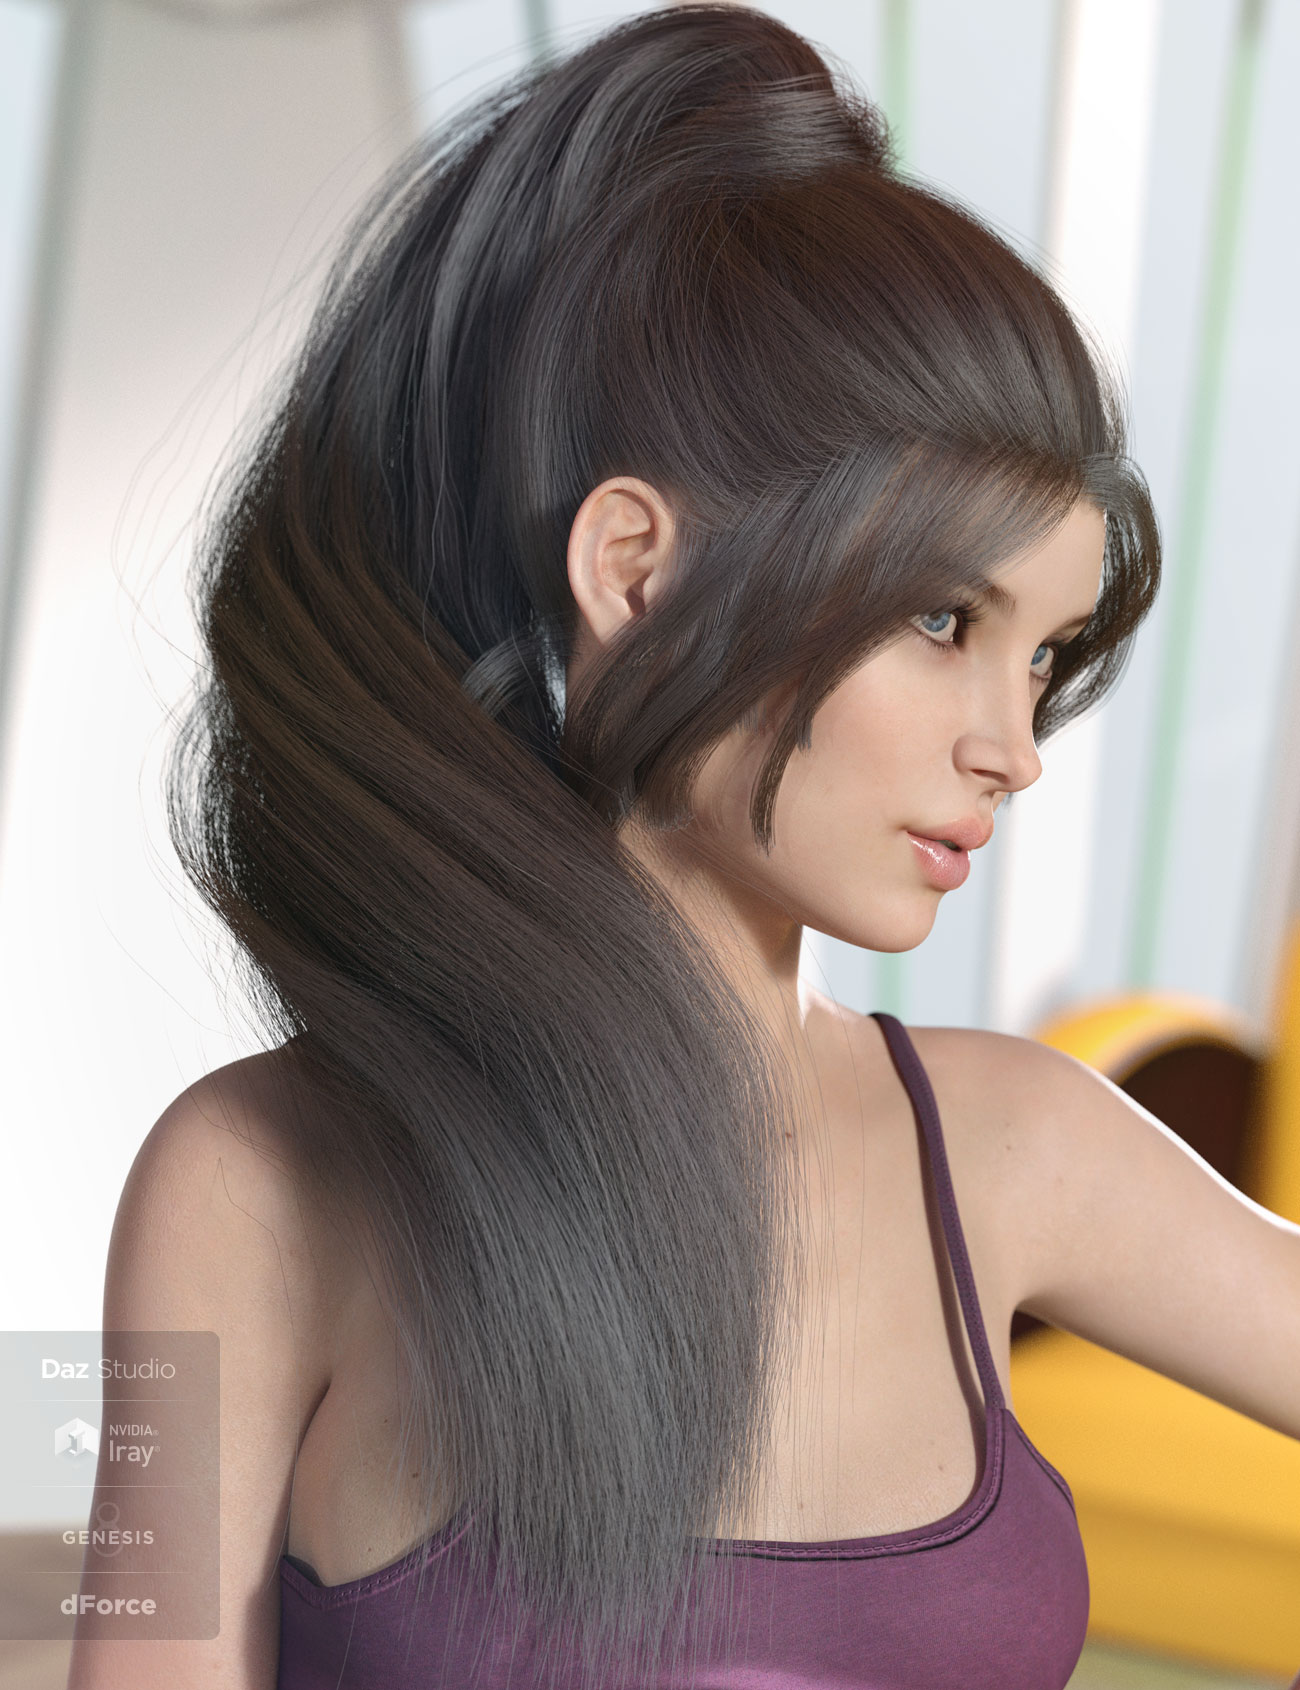 dForce Lea Hair for Genesis 3 and 8 Females(s) by: AprilYSH, 3D Models by Daz 3D